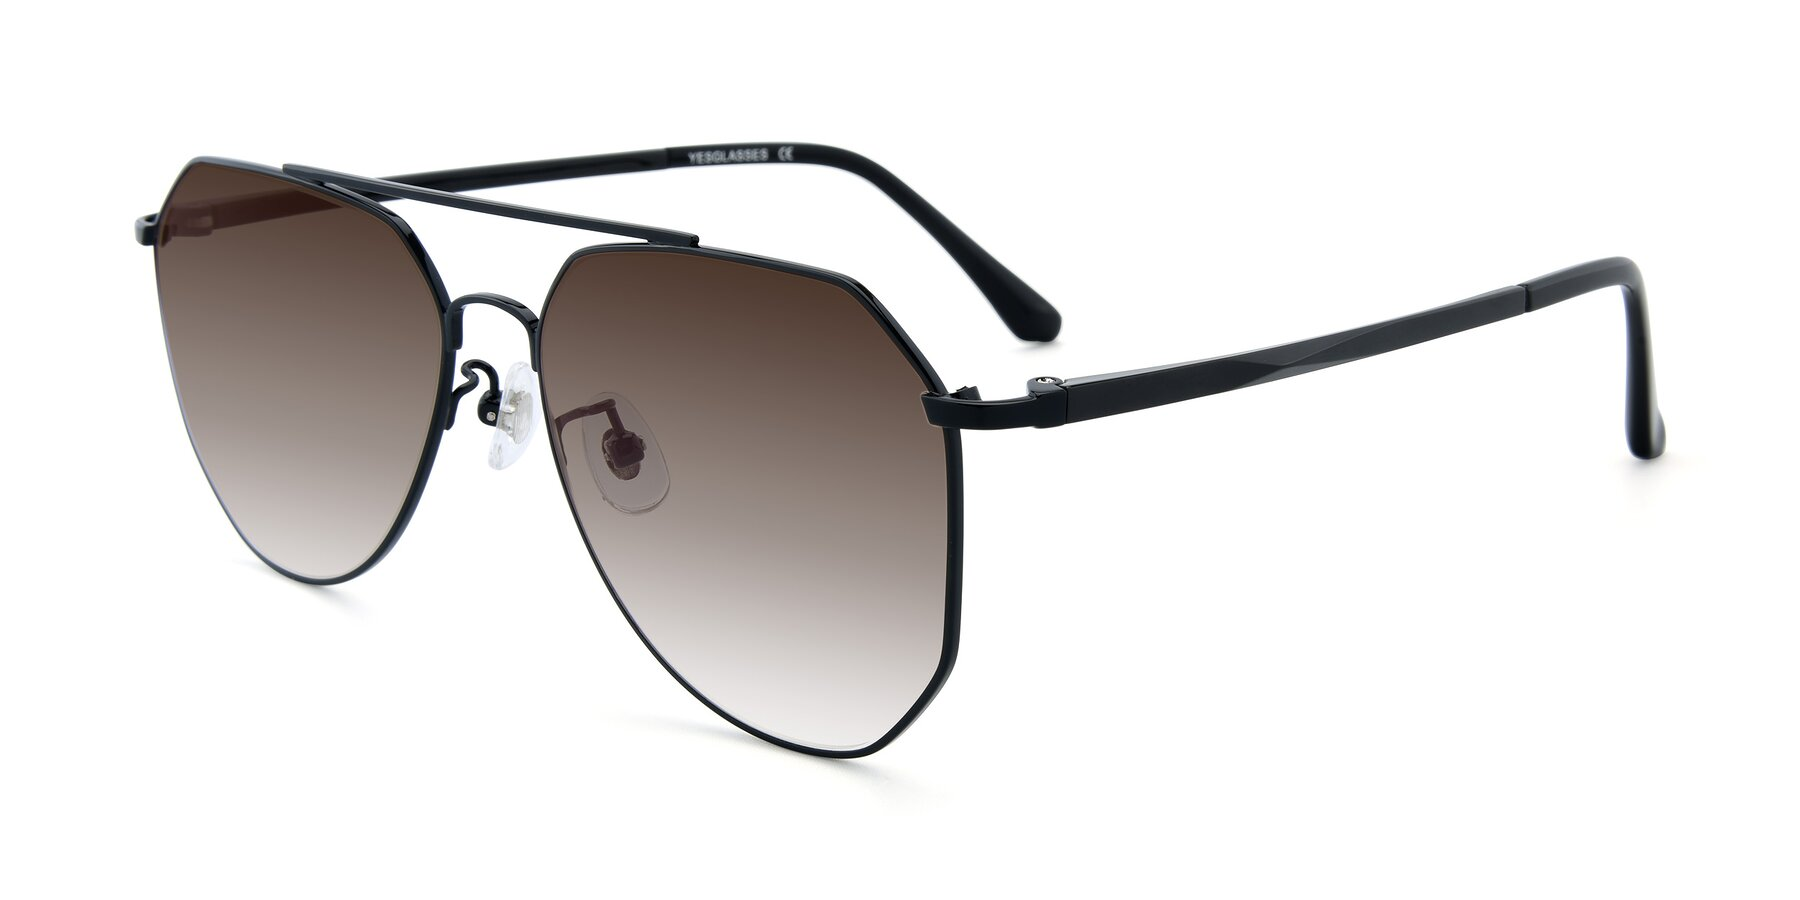 Angle of XC-8040 in Black with Brown Gradient Lenses